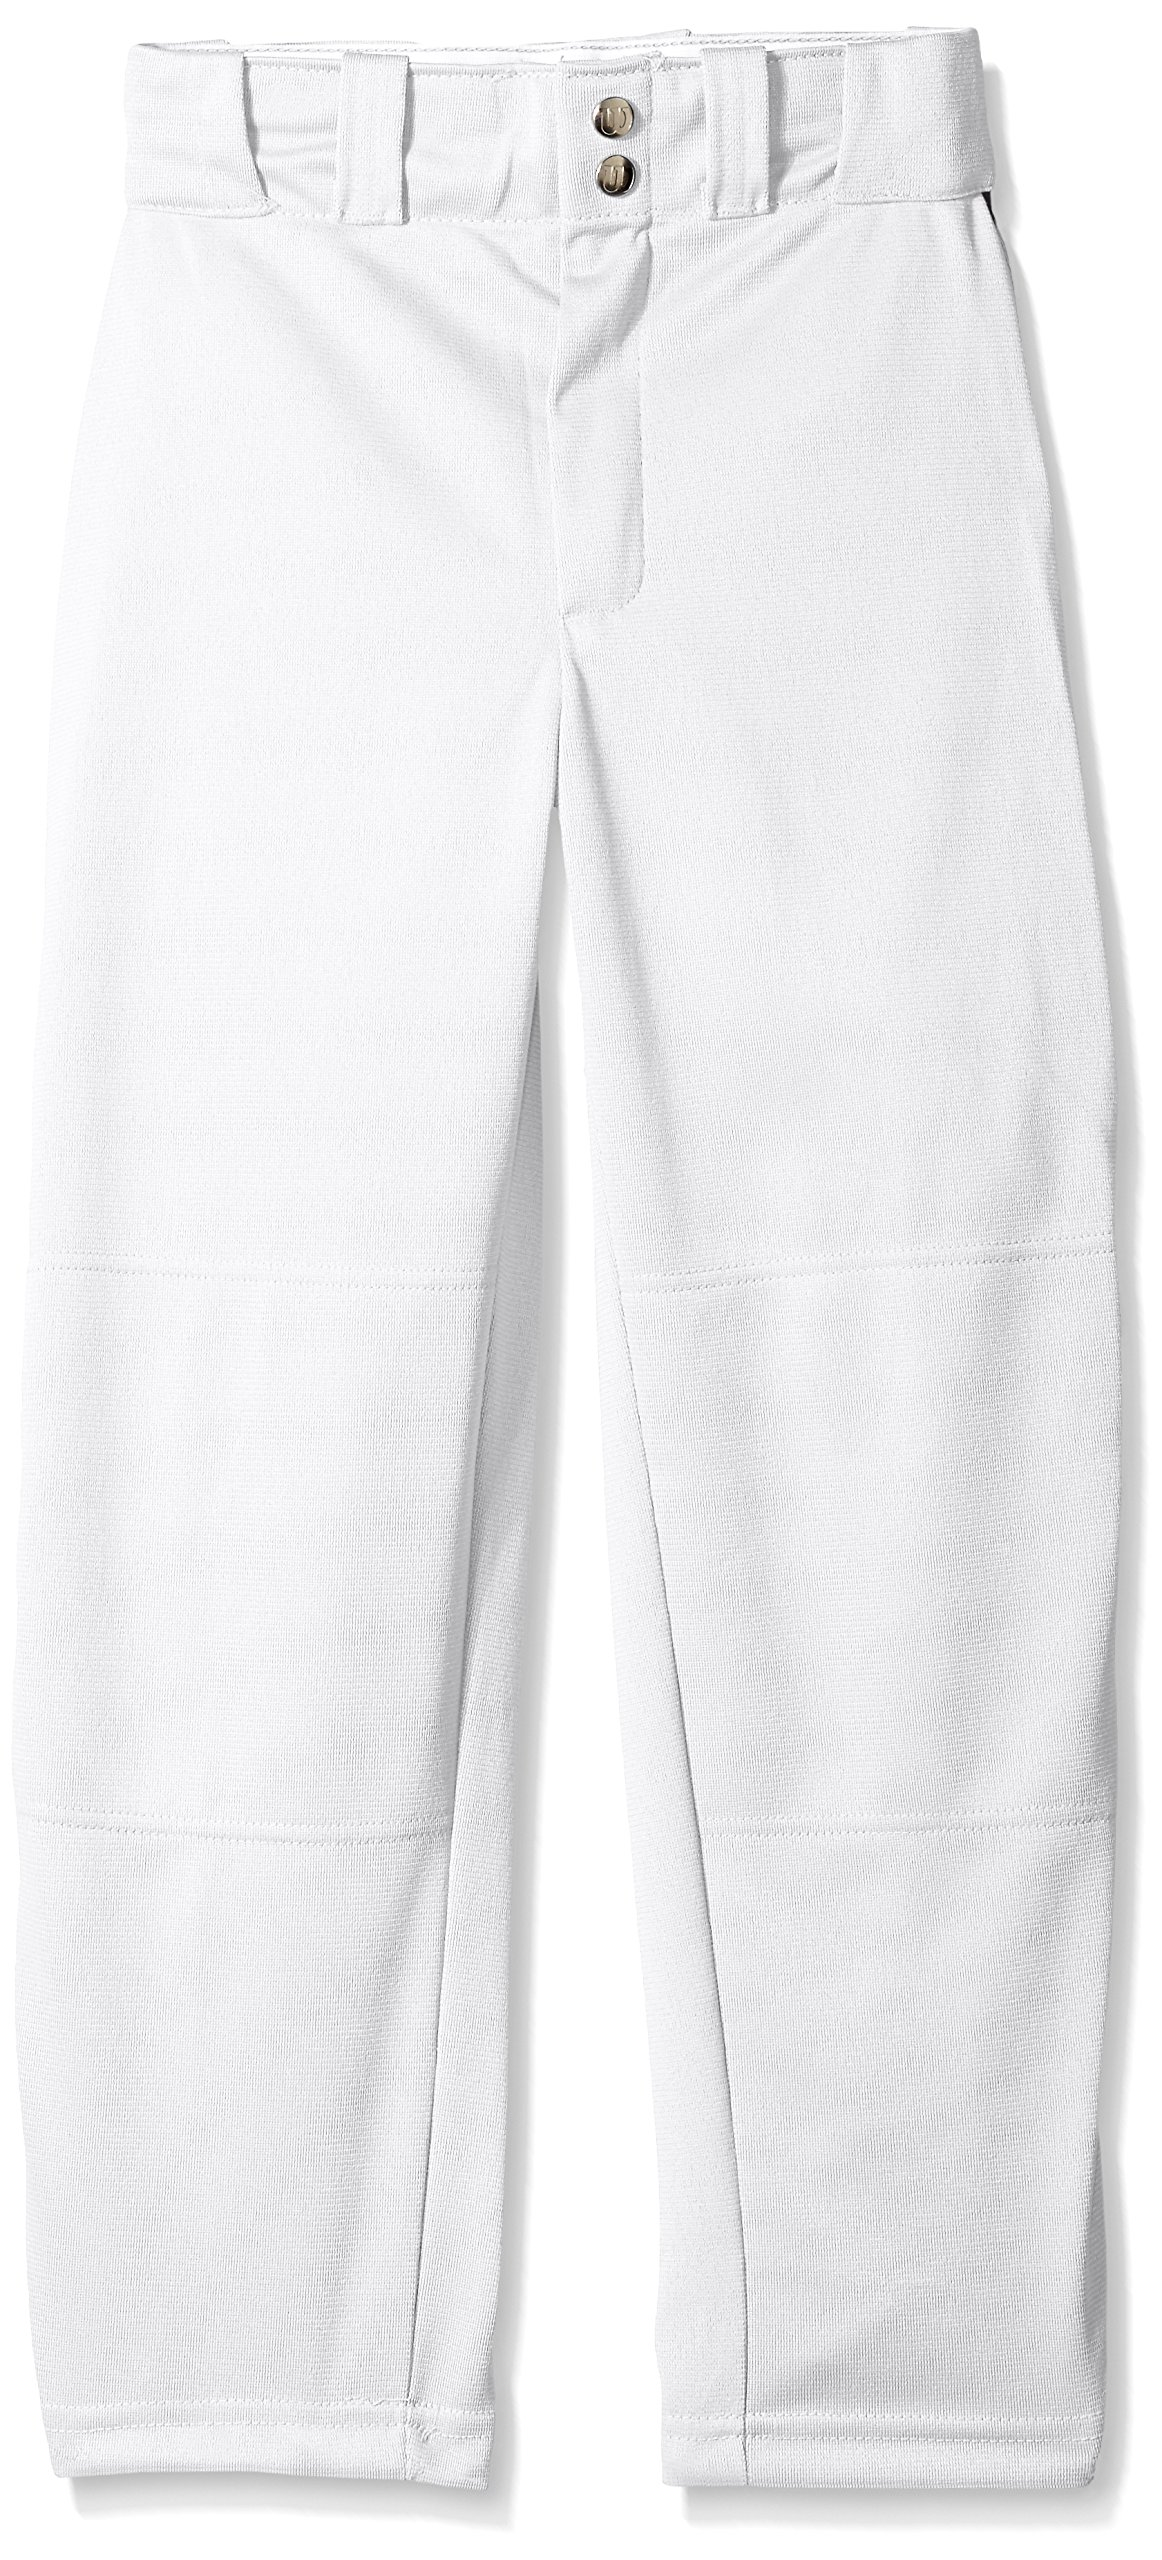 Wilson Youth Classic Relaxed Fit Piped Baseball Pant, White/Navy, Large by Wilson